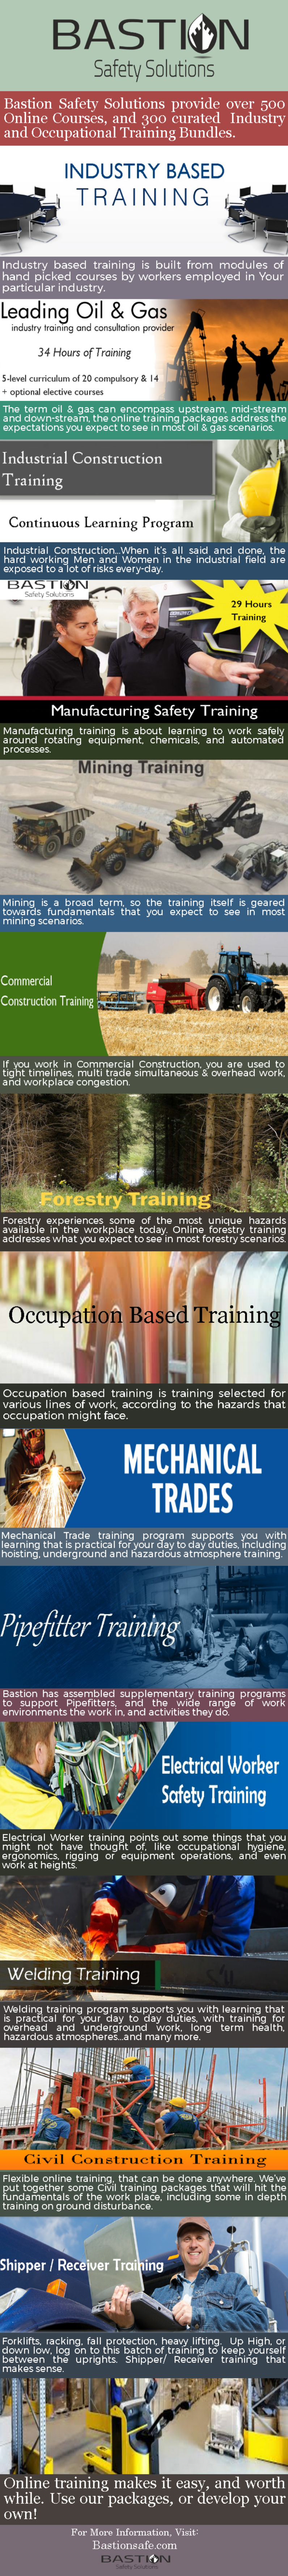 Online Safety Industry Based Training  Safety Training Programs